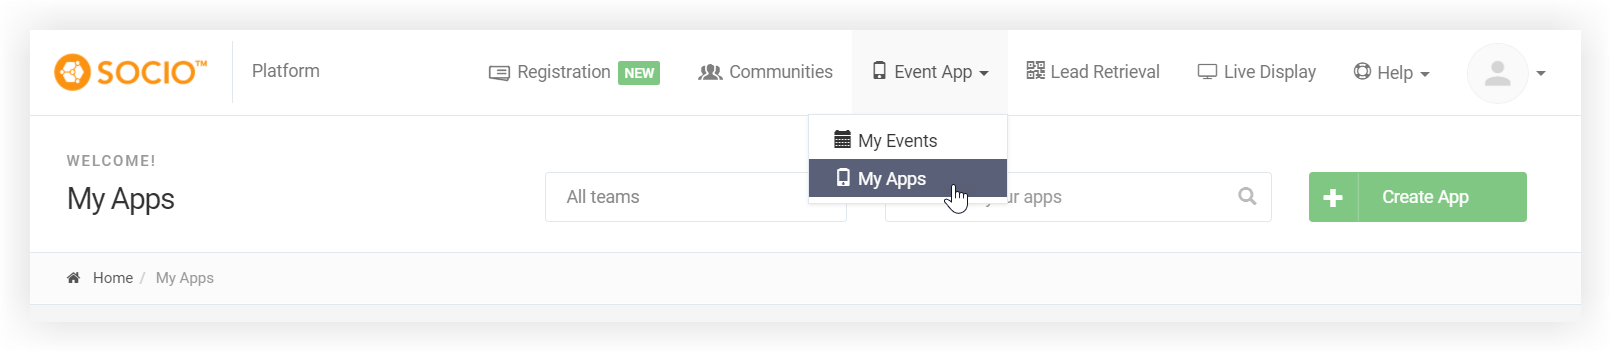 Screenshot of the Socio platform with the Event App dropdown expanded and My Apps indicated.